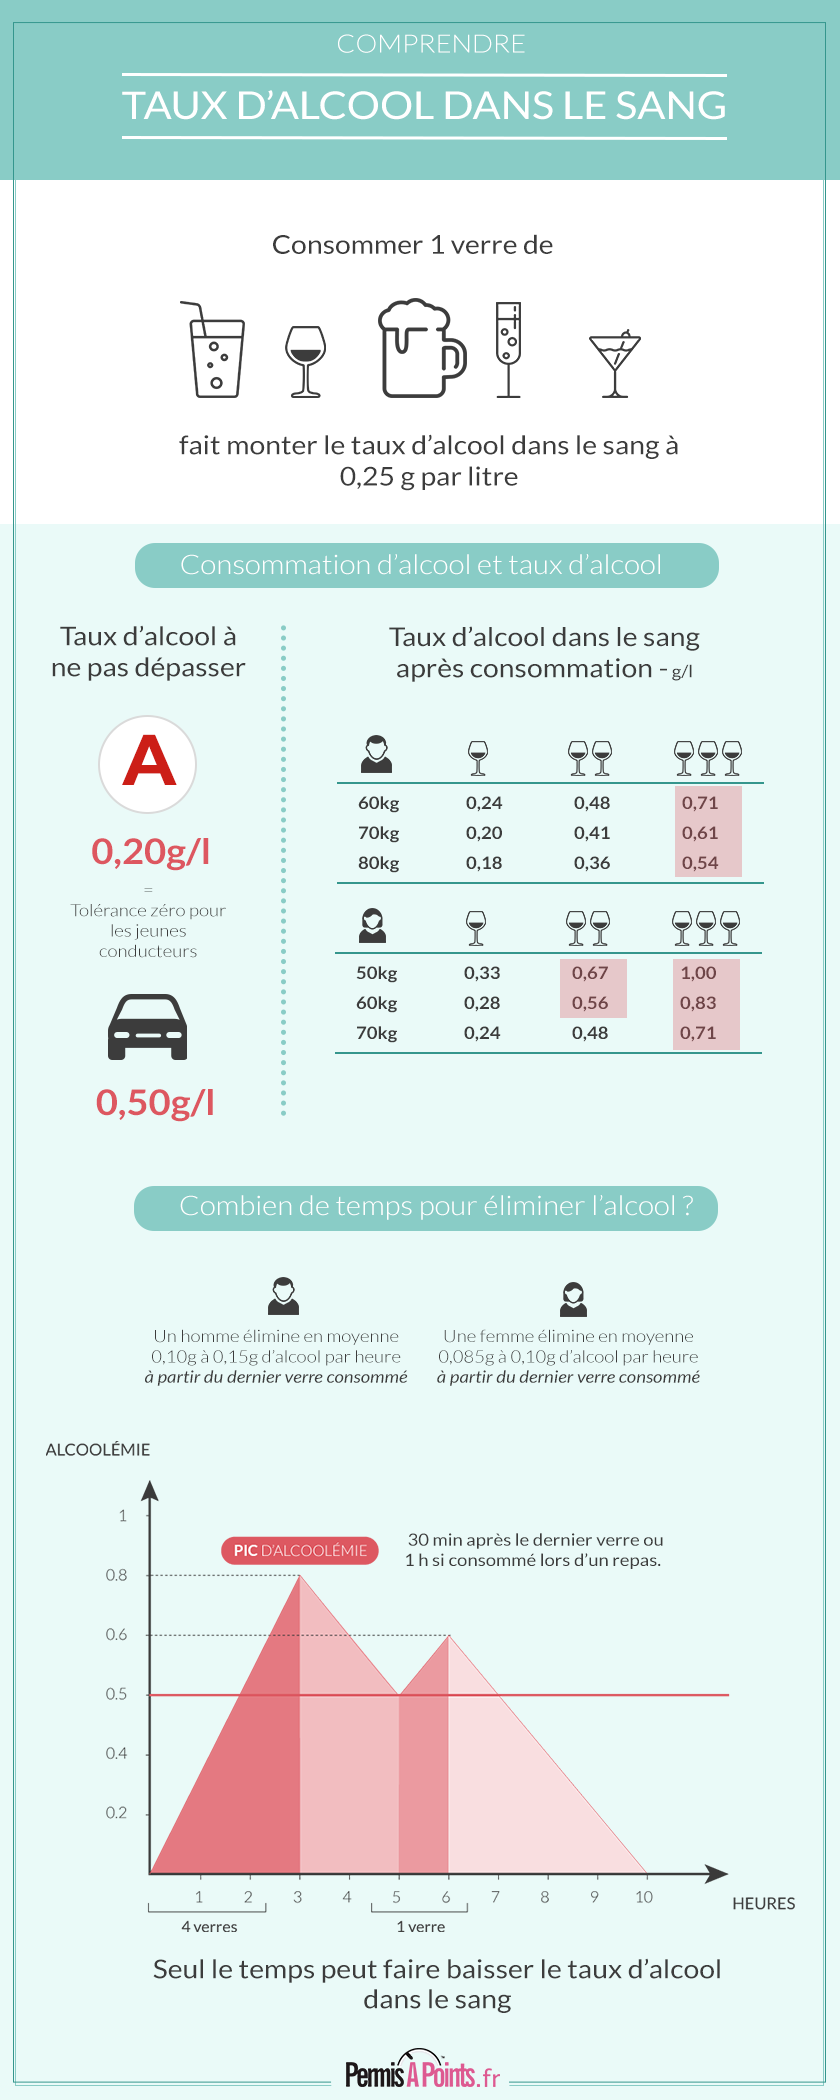 taux alcool conduite infographie consommation d 39 alcool en france thinglink taux d 39 alcool. Black Bedroom Furniture Sets. Home Design Ideas